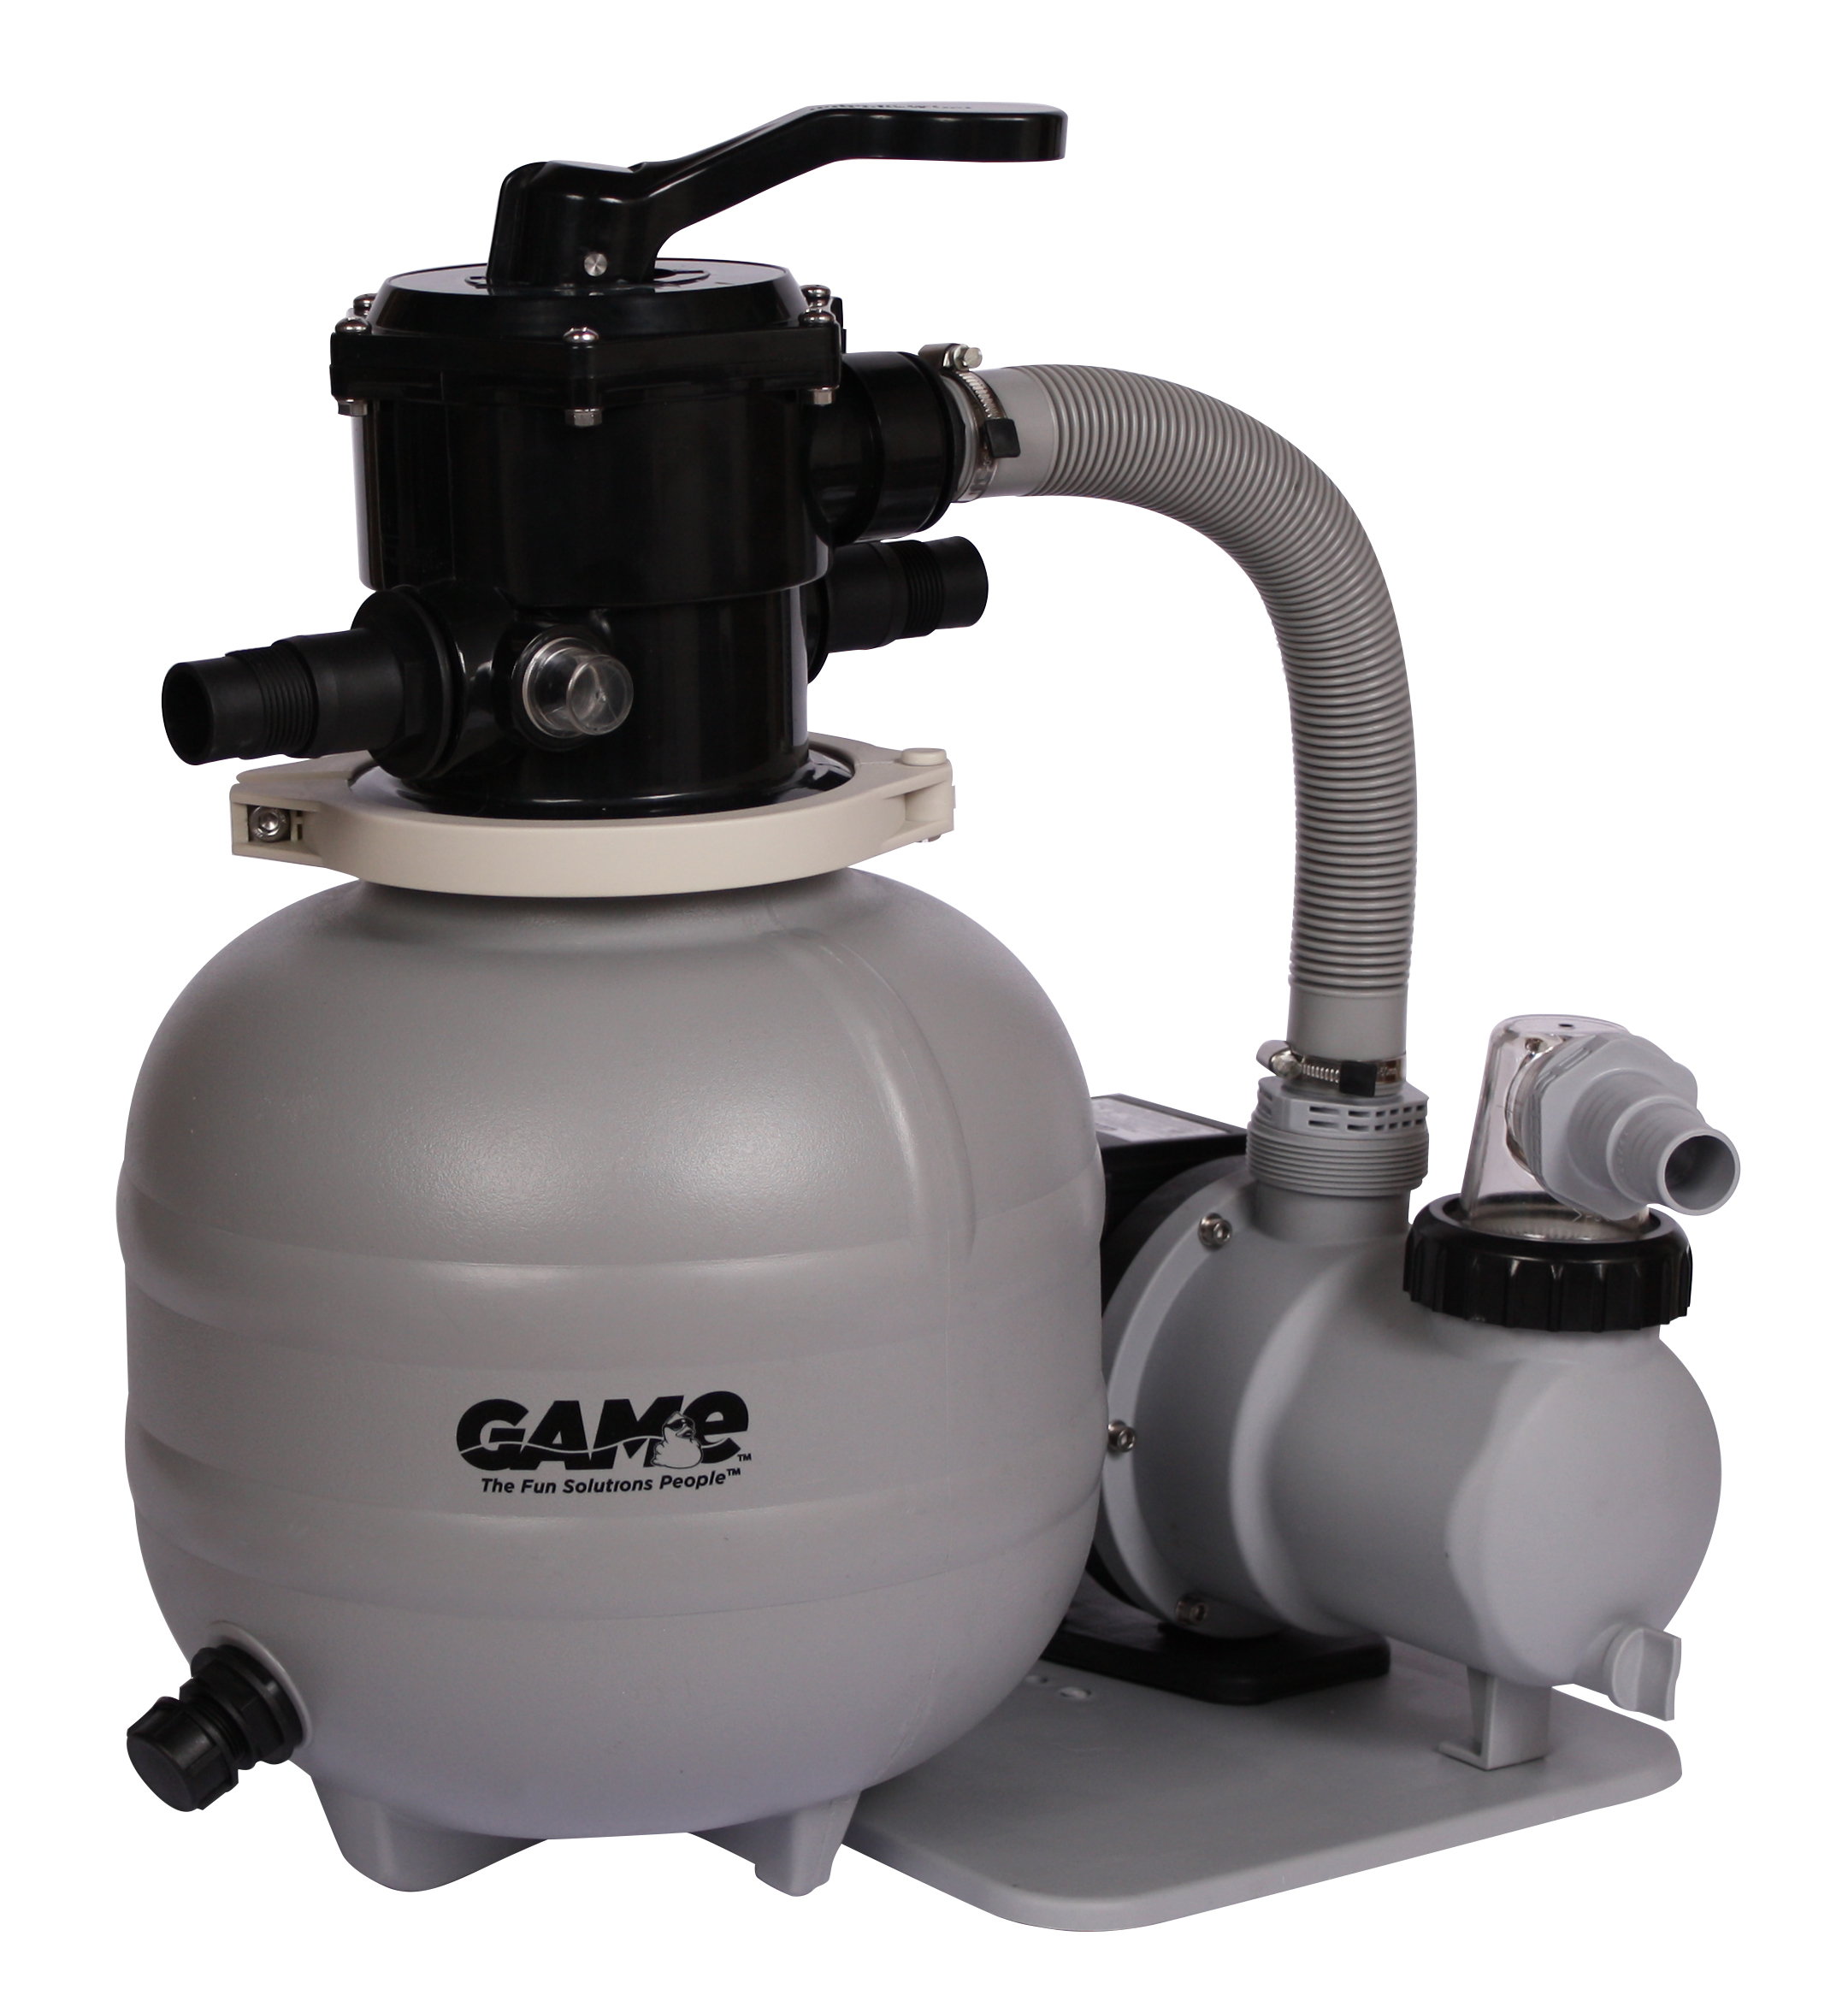 Sandpro 25 High Flow Pool Pump And Filter System For